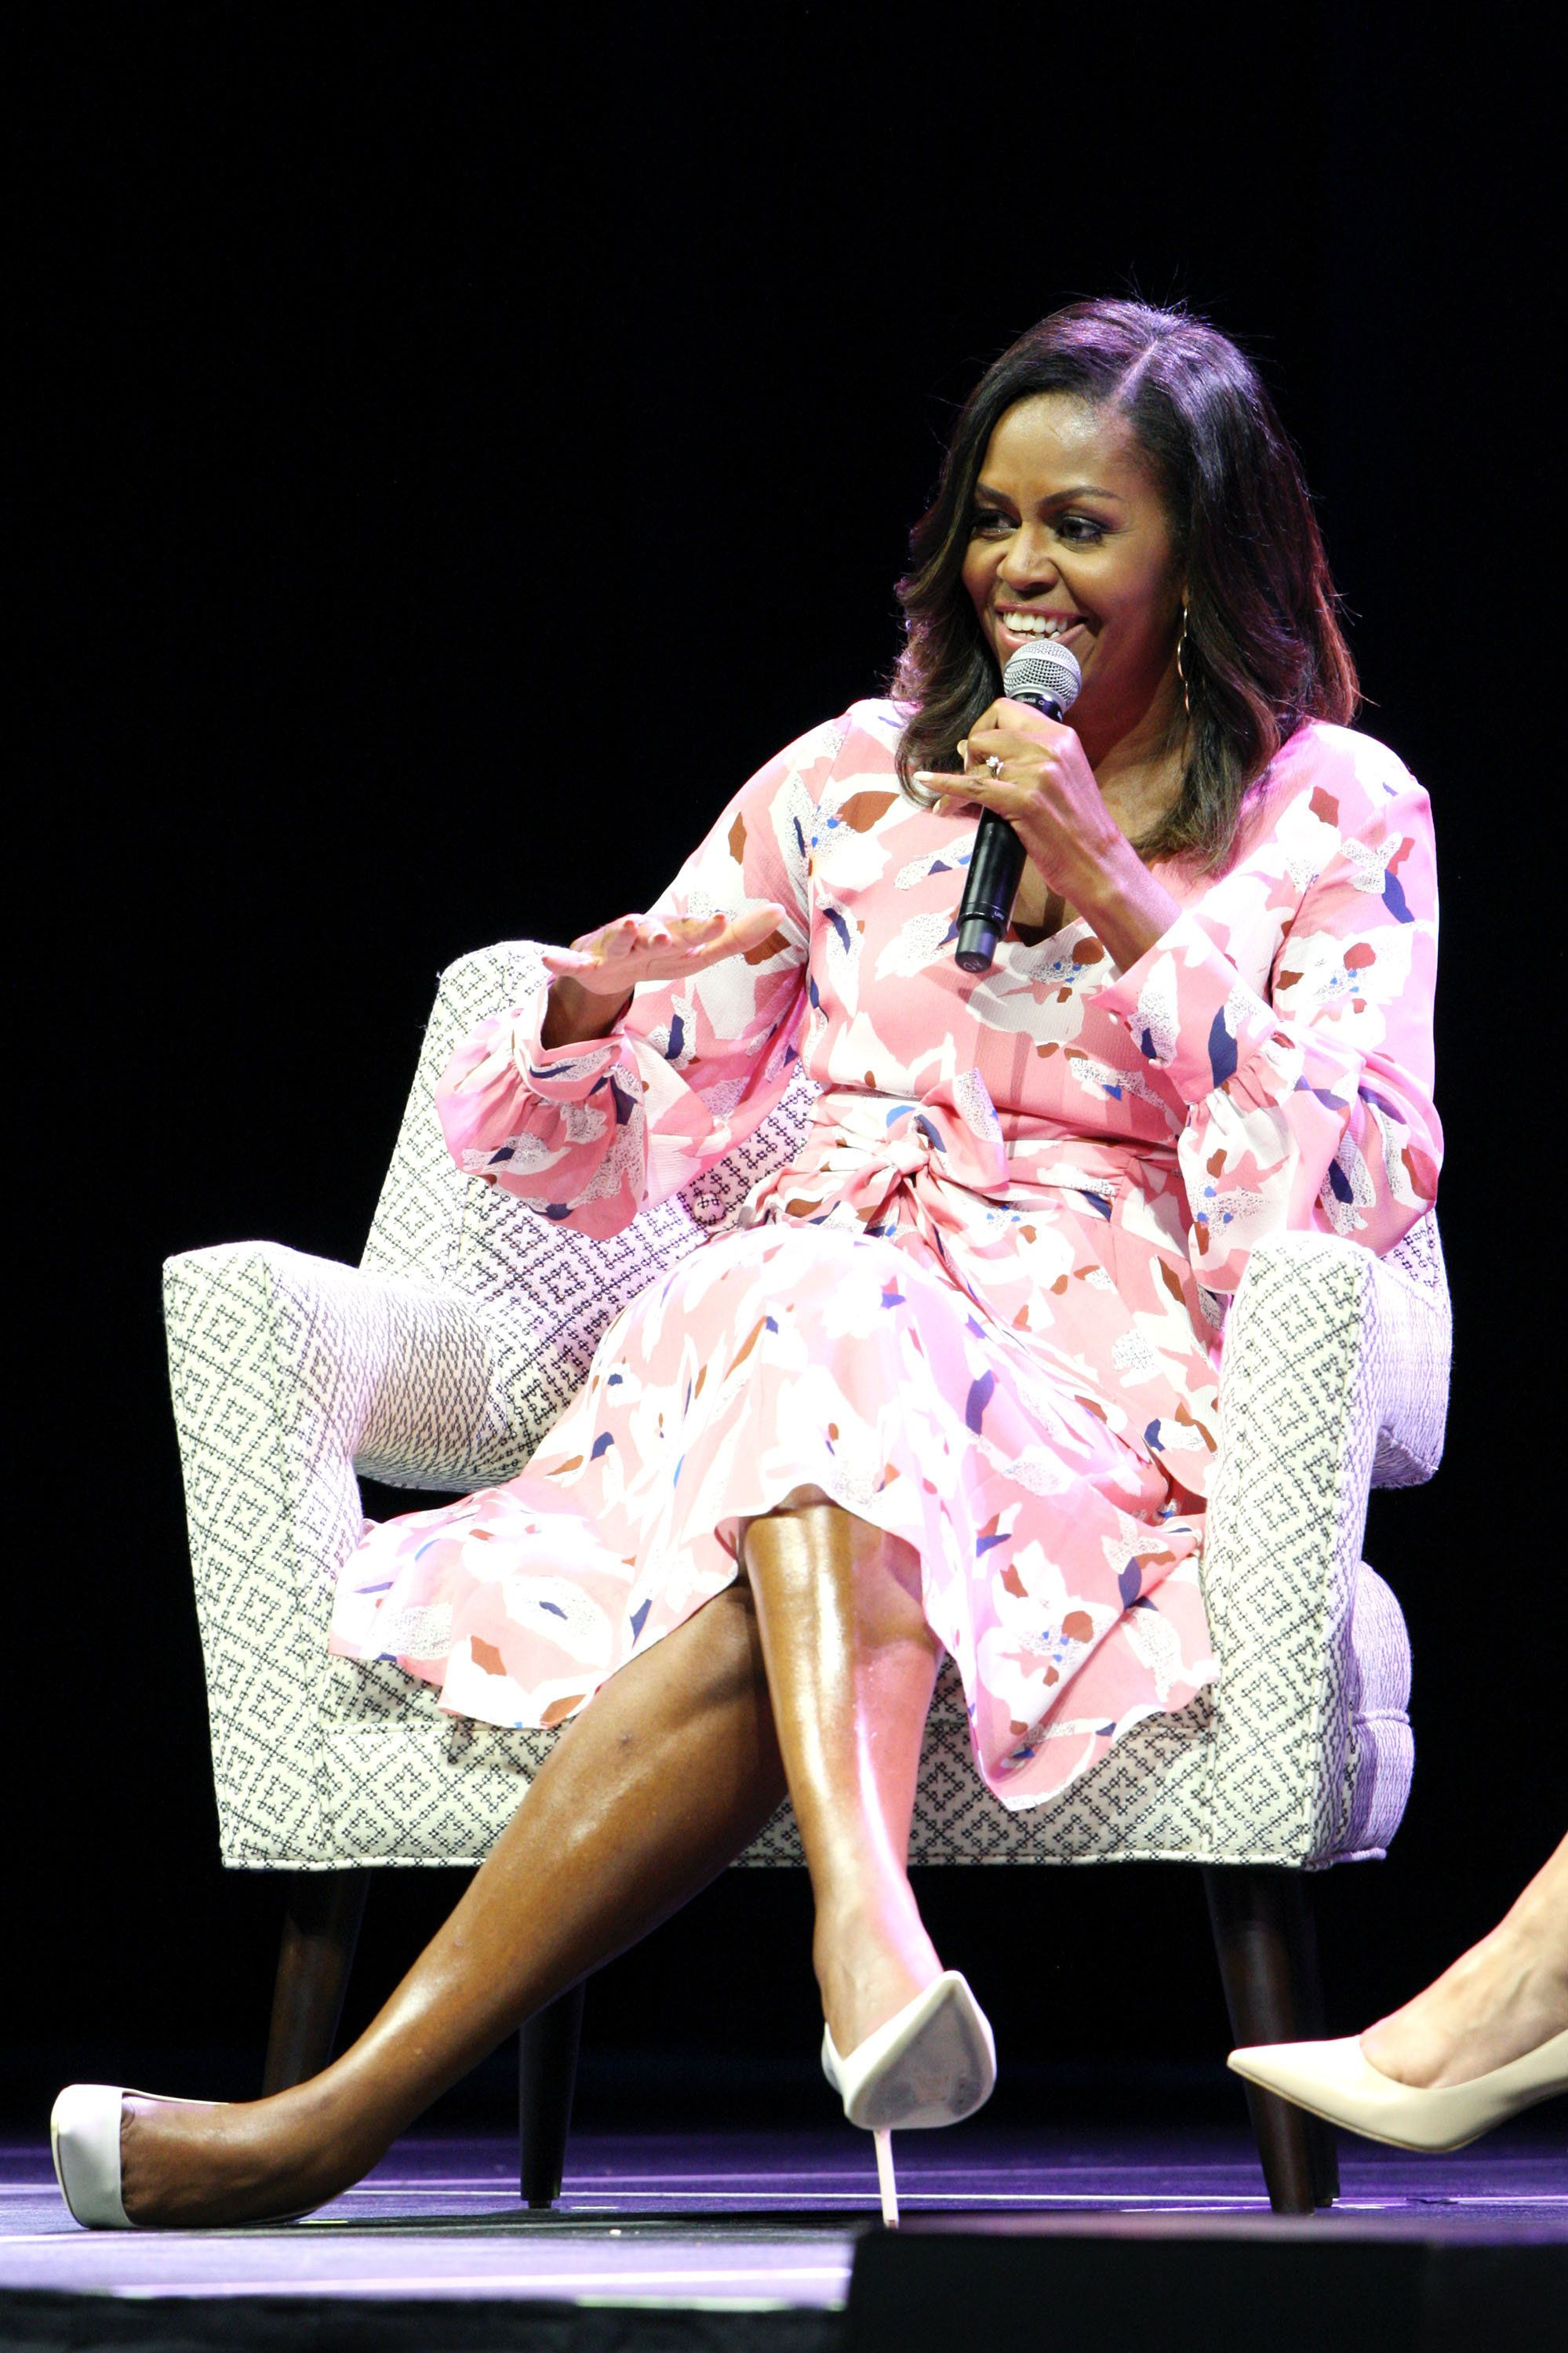 Michelle Obama in Tanya Taylor.